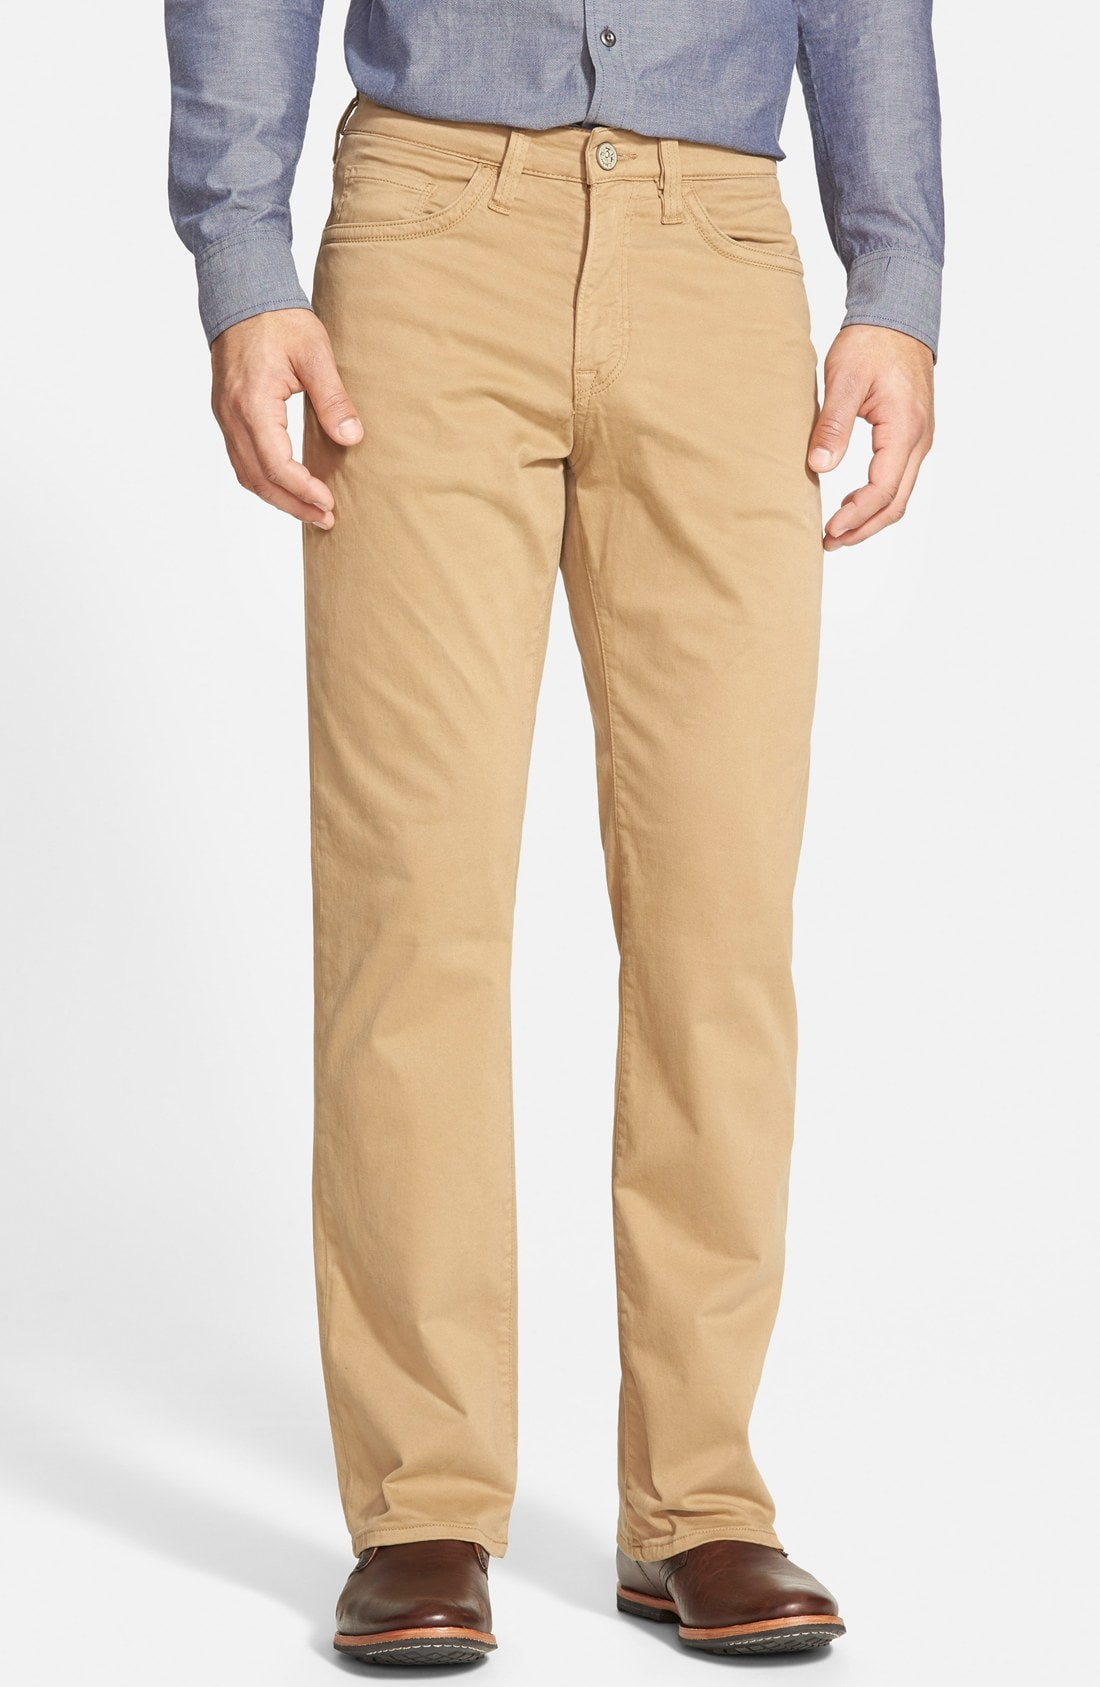 34 Heritage 'Charisma' Classic Relaxed Fit Pants (Online Only)